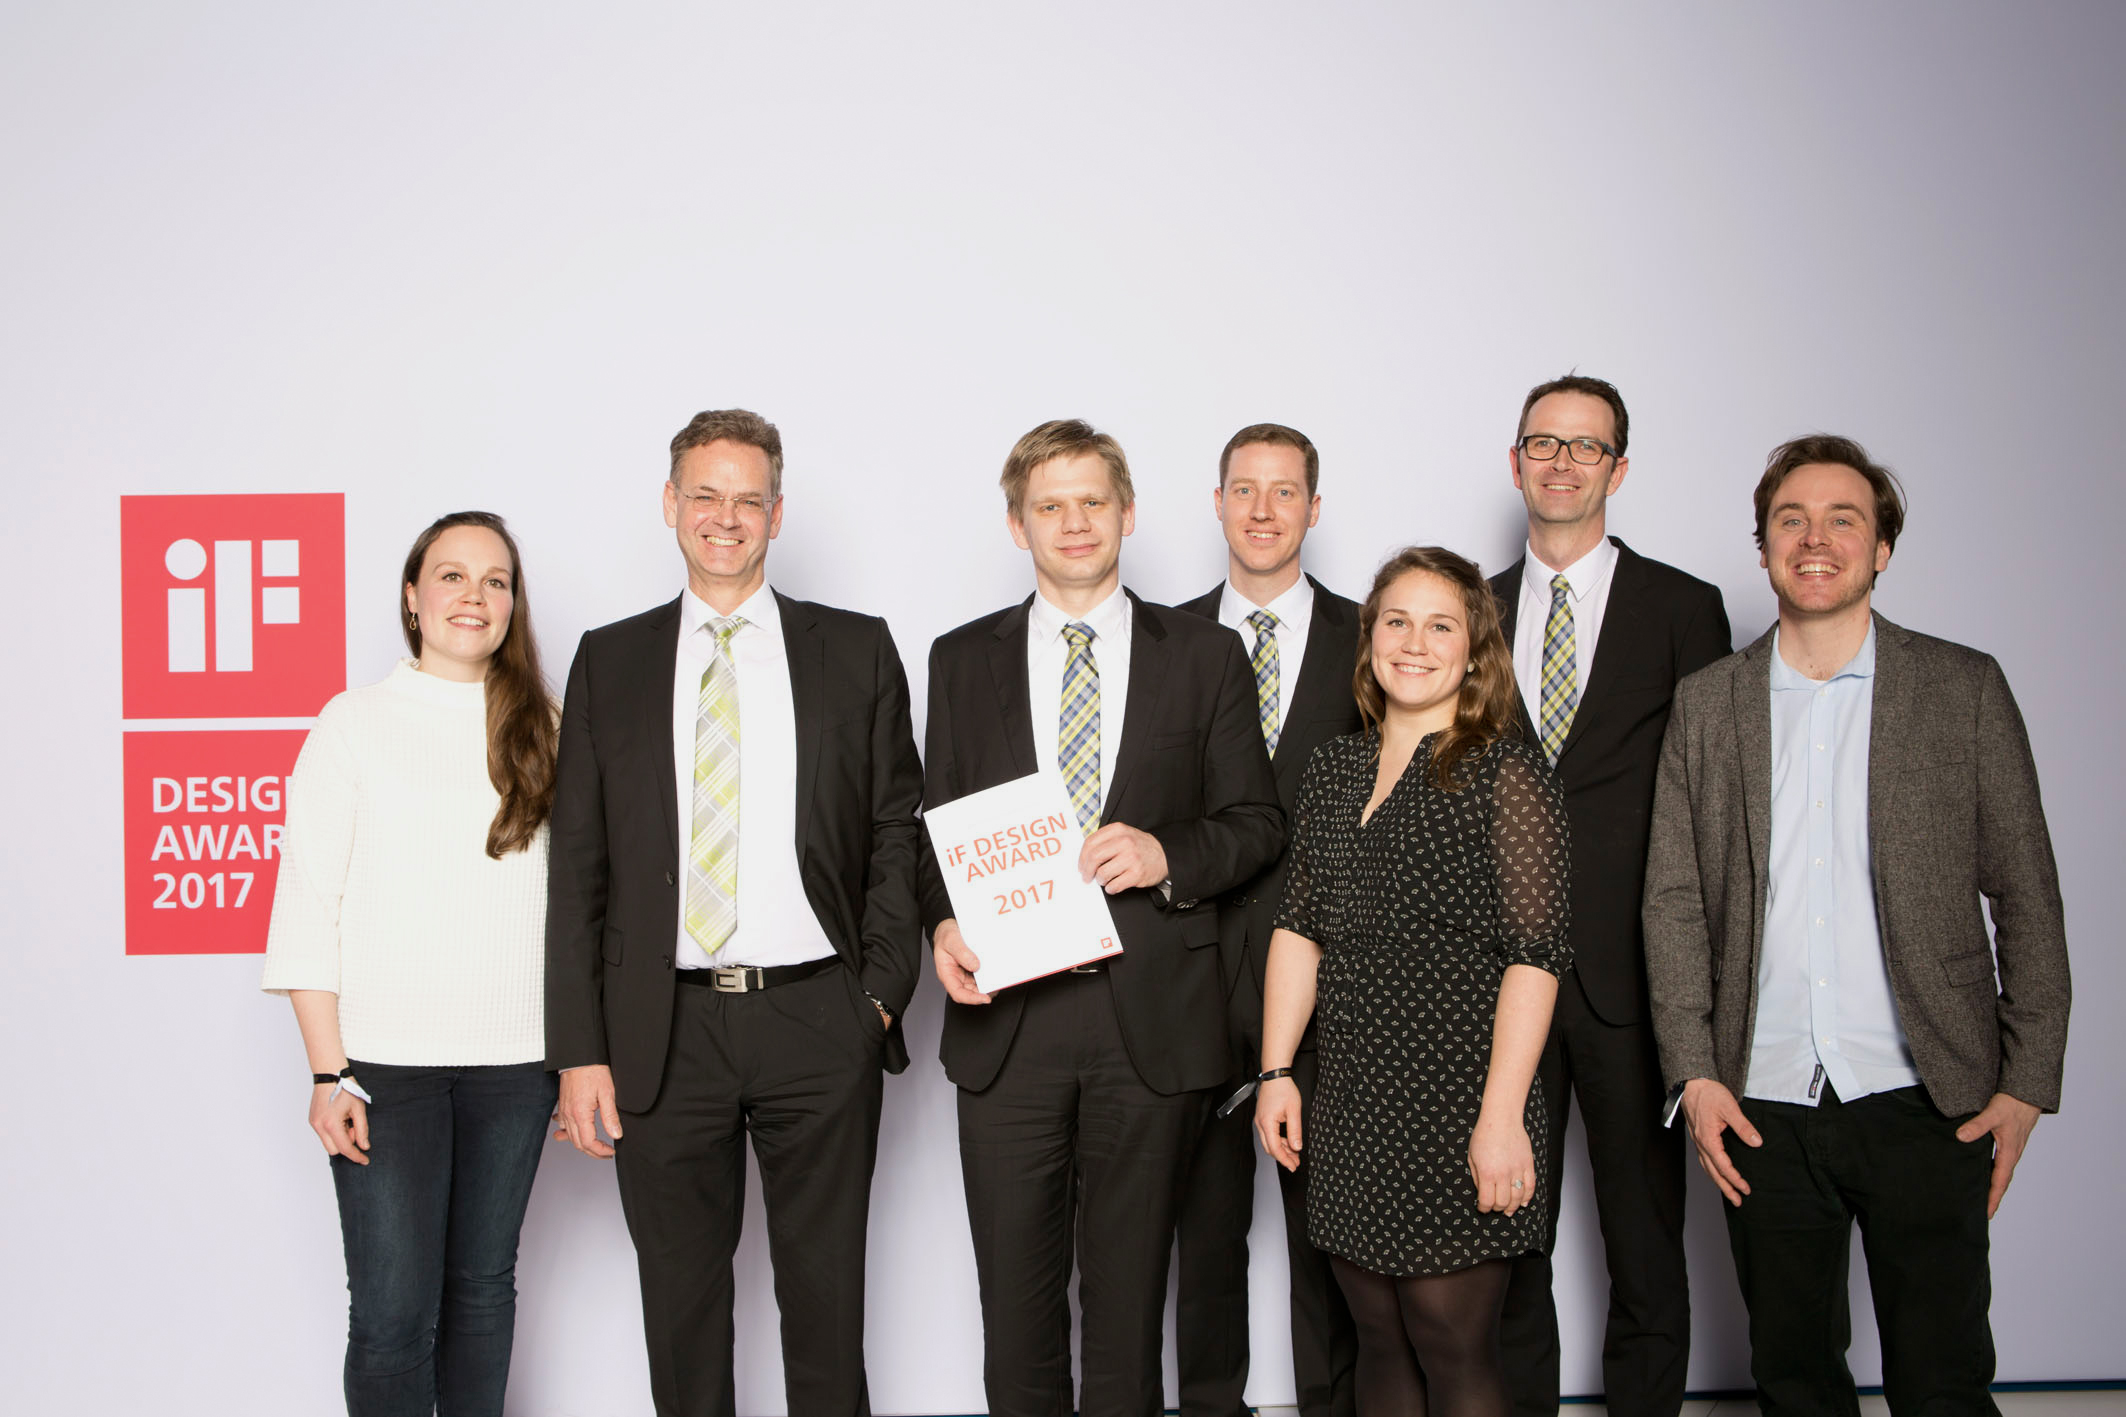 The JAGUAR 900 won an IF Design Award in the 'Product' category; from left: Lia Budde (Manager, Budde Industrie Design), Michael Kohlem (Development Manager, CLAAS Selbstfahrende Erntemaschinen GmbH), Dirk Lahmann (Project Manager, JAGUAR), Dominik Kockentiedt (Developer, JAGUAR), Maike Budde (Designer, Budde Industrie Design), Alexander Kirchbeck (Project Manager, JAGUAR), Patrick Ehlers (Designer, Budde Industrie Design).